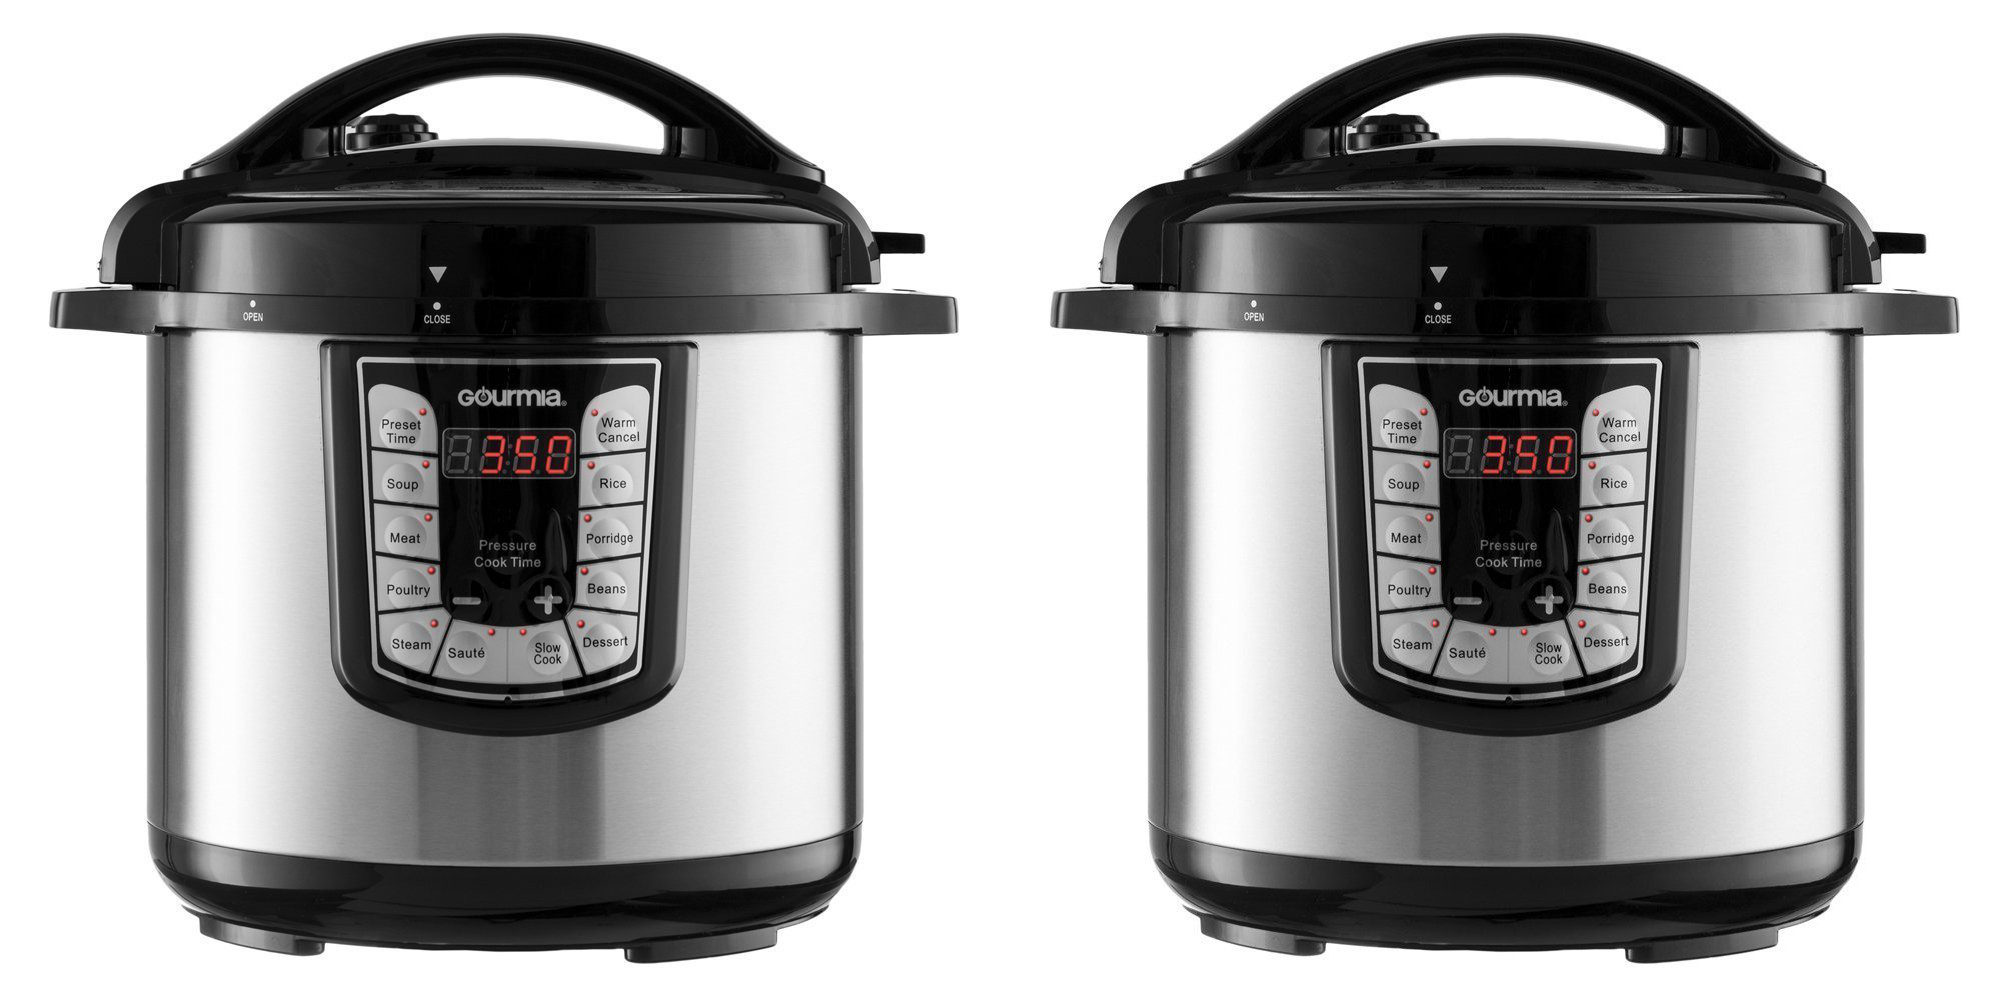 No need to spend a fortune on an 8-quart multi cooker, this Gourmia is only $50 (Reg. $75+)